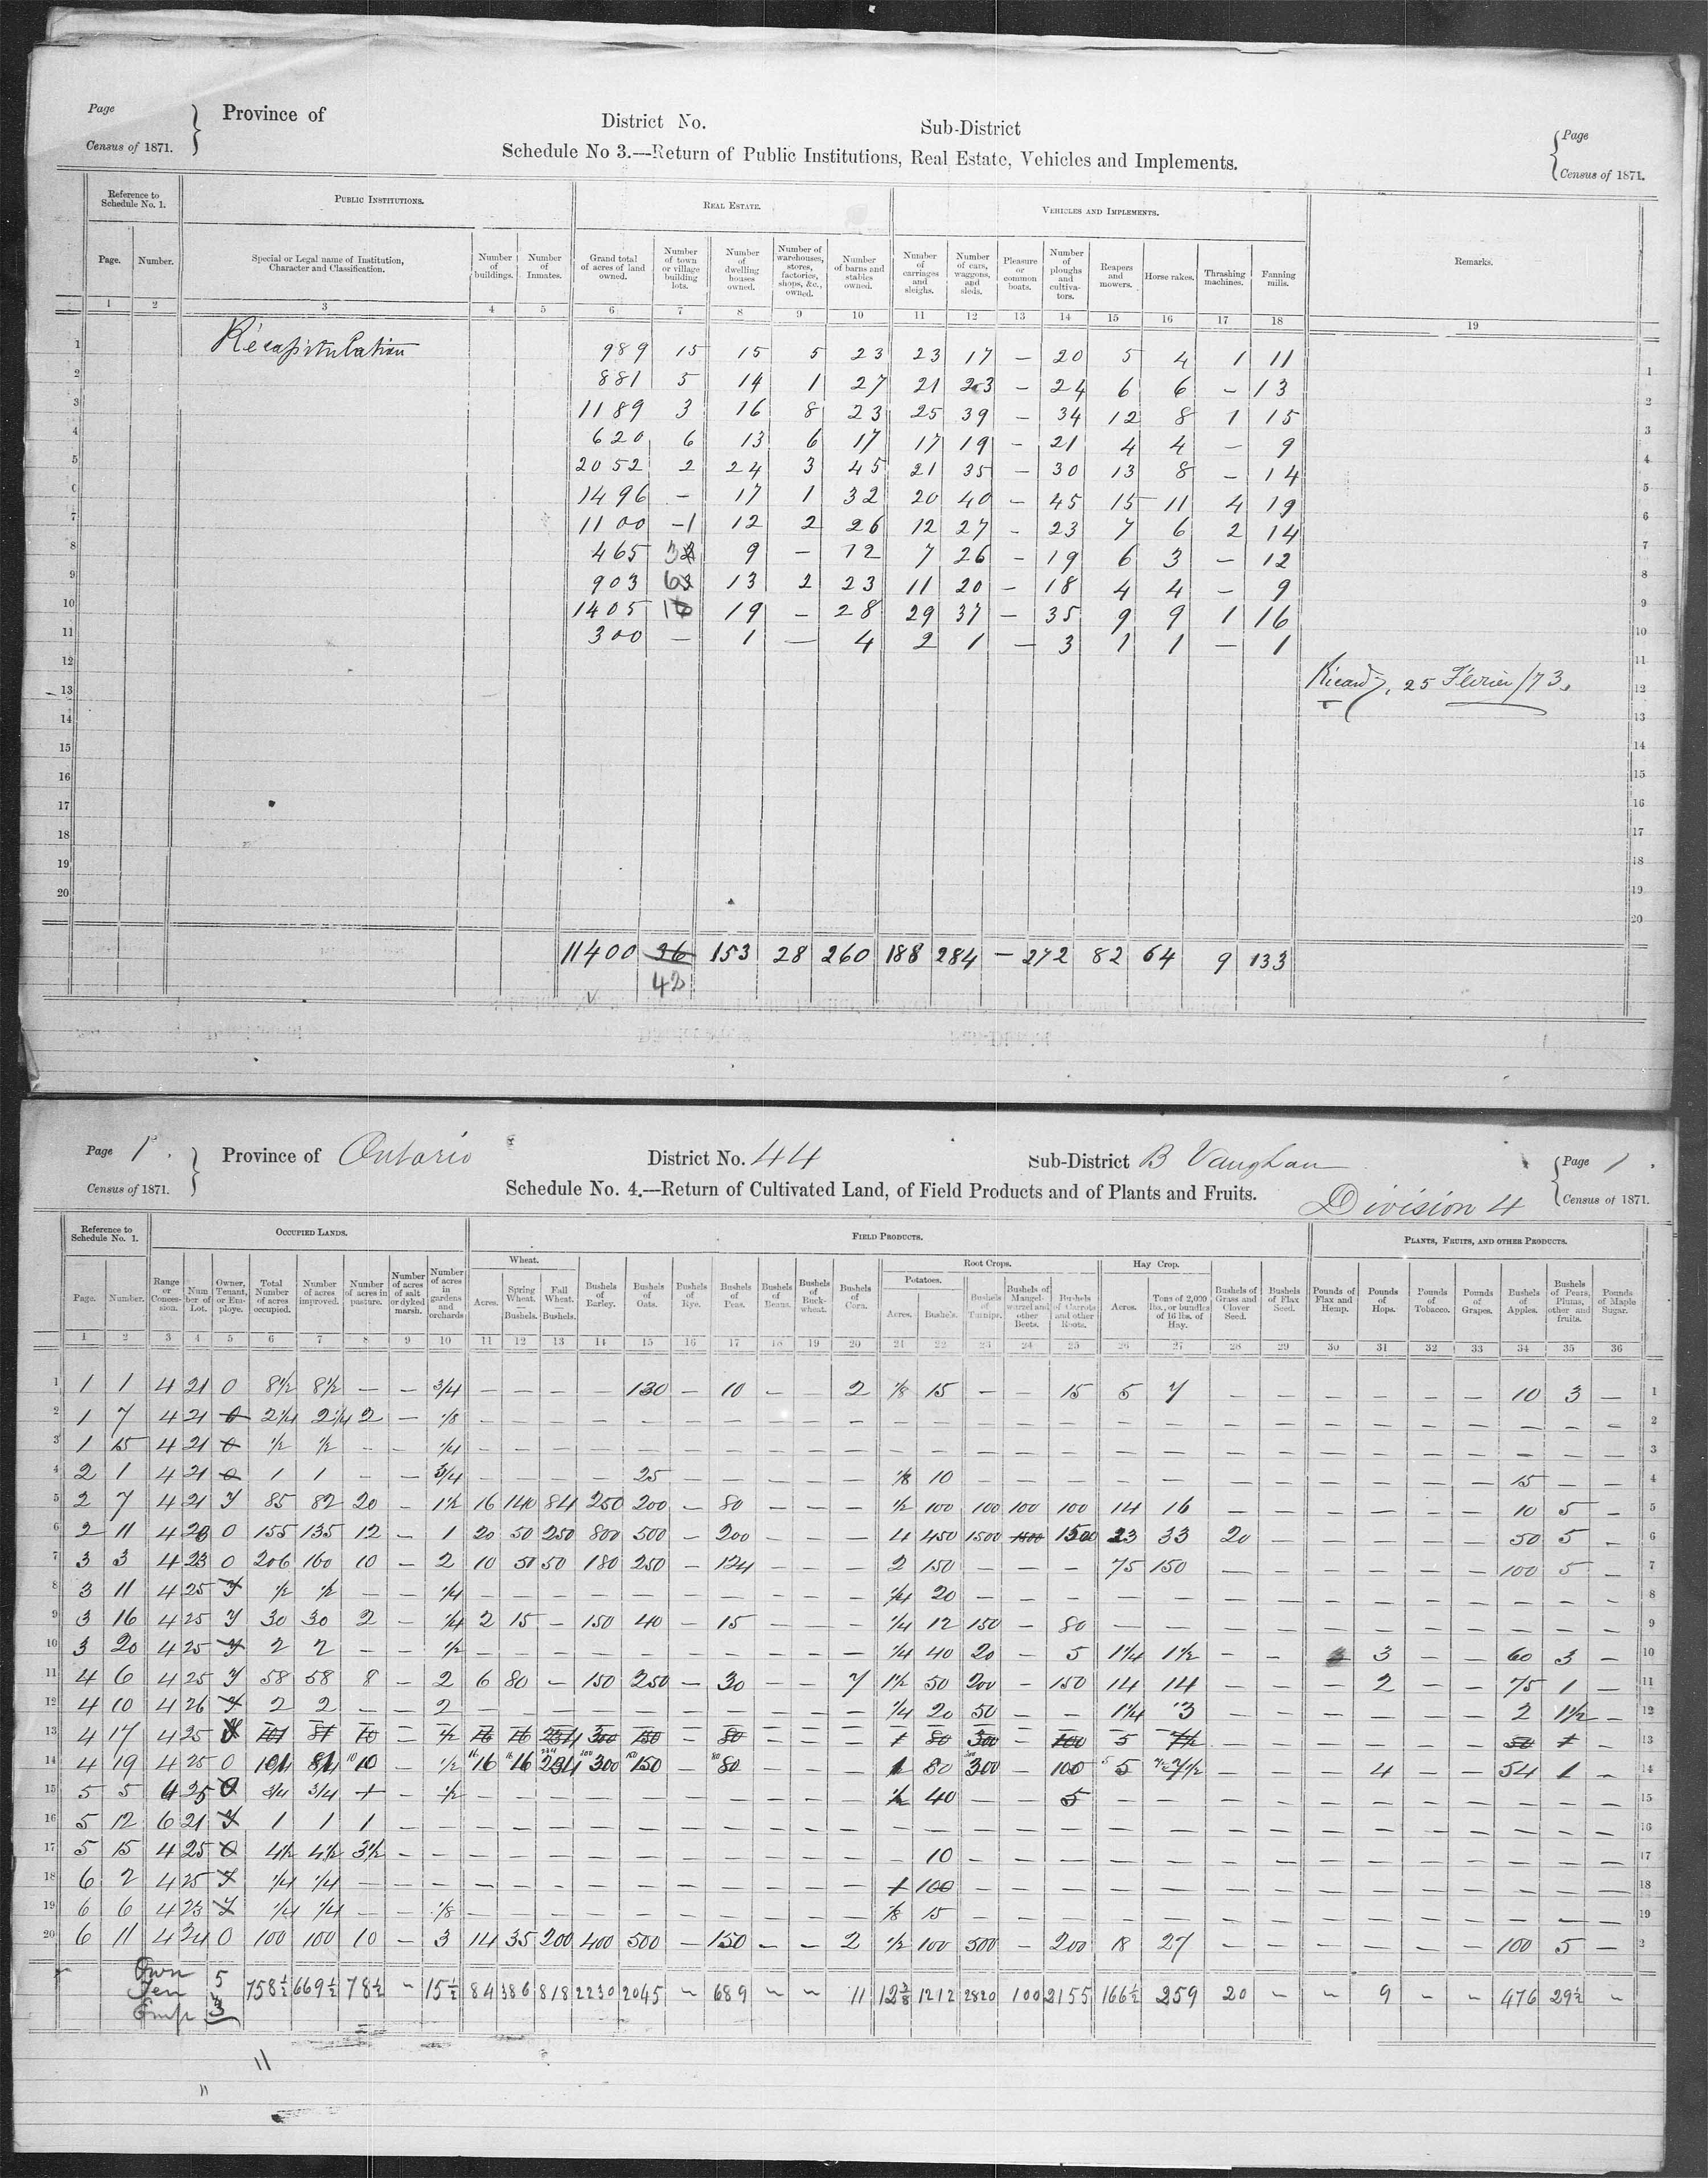 Title: Census of Canada, 1871 - Mikan Number: 142105 - Microform: c-9967